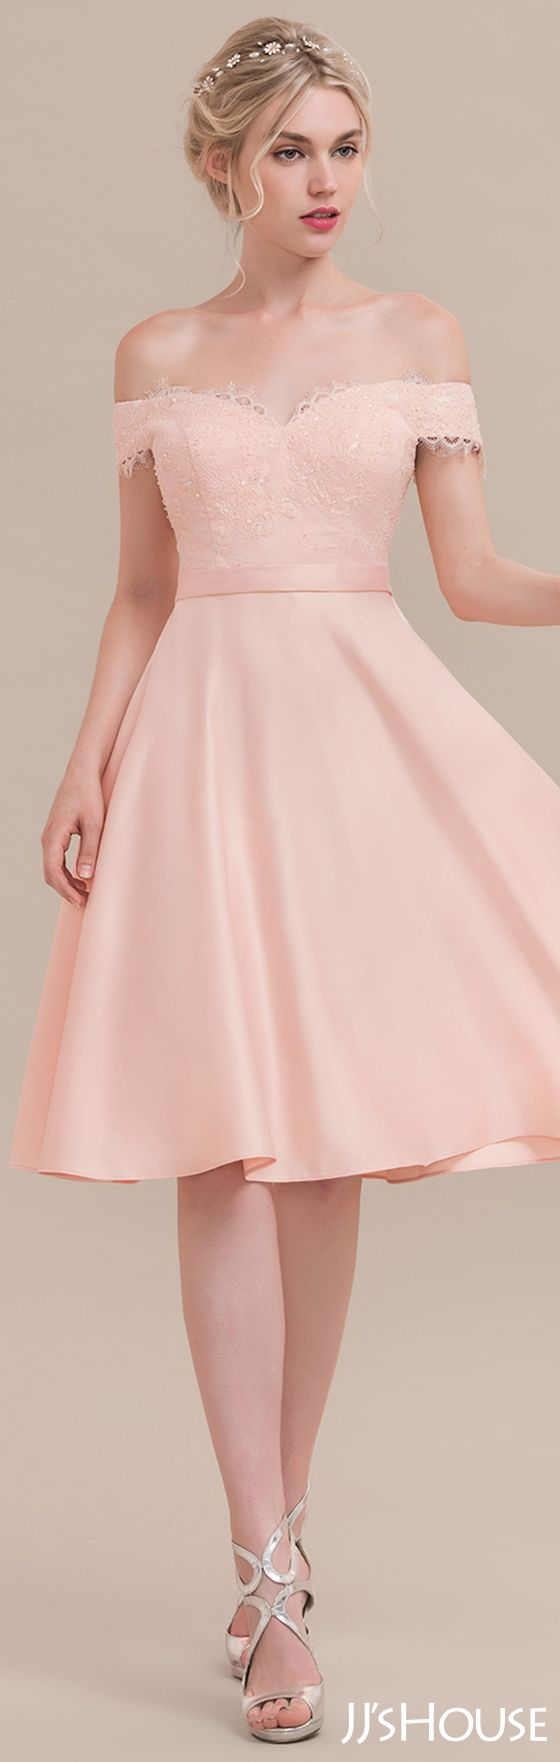 A-Line/Princess Off-the-Shoulder Knee-Length Satin Cocktail Dress ...